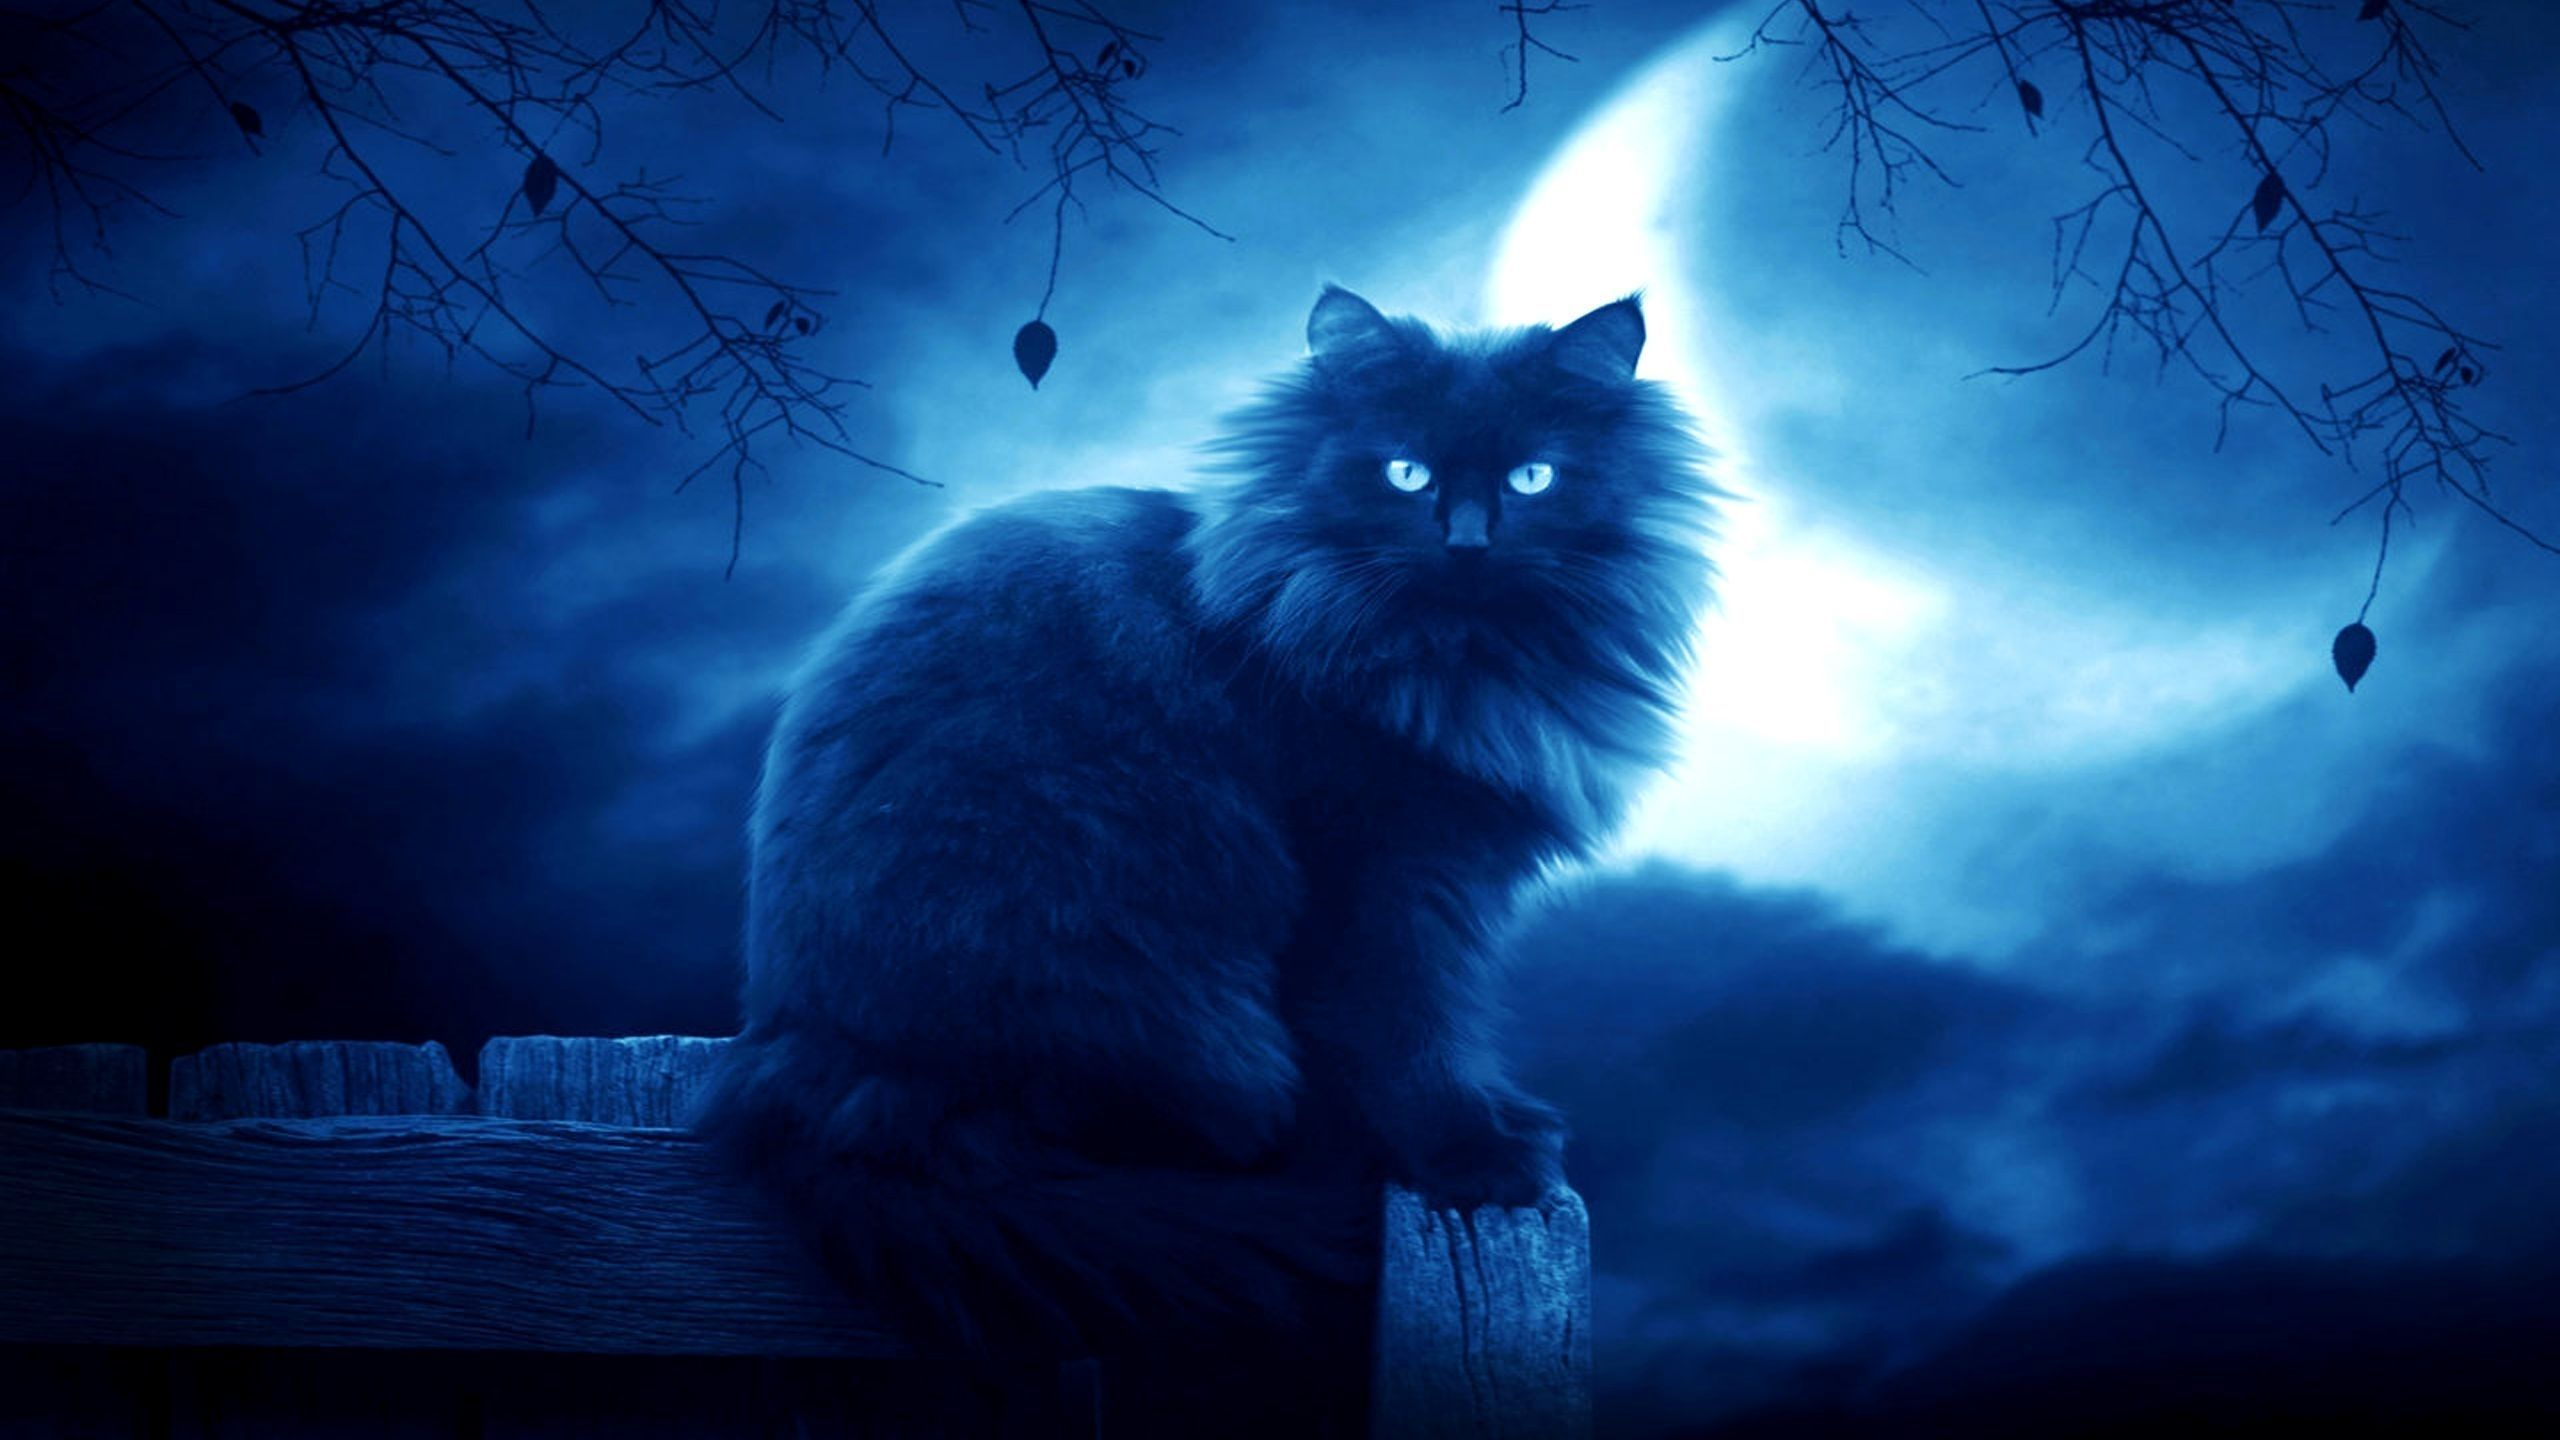 Cat wallpapers hd free download d wallpapers pinterest